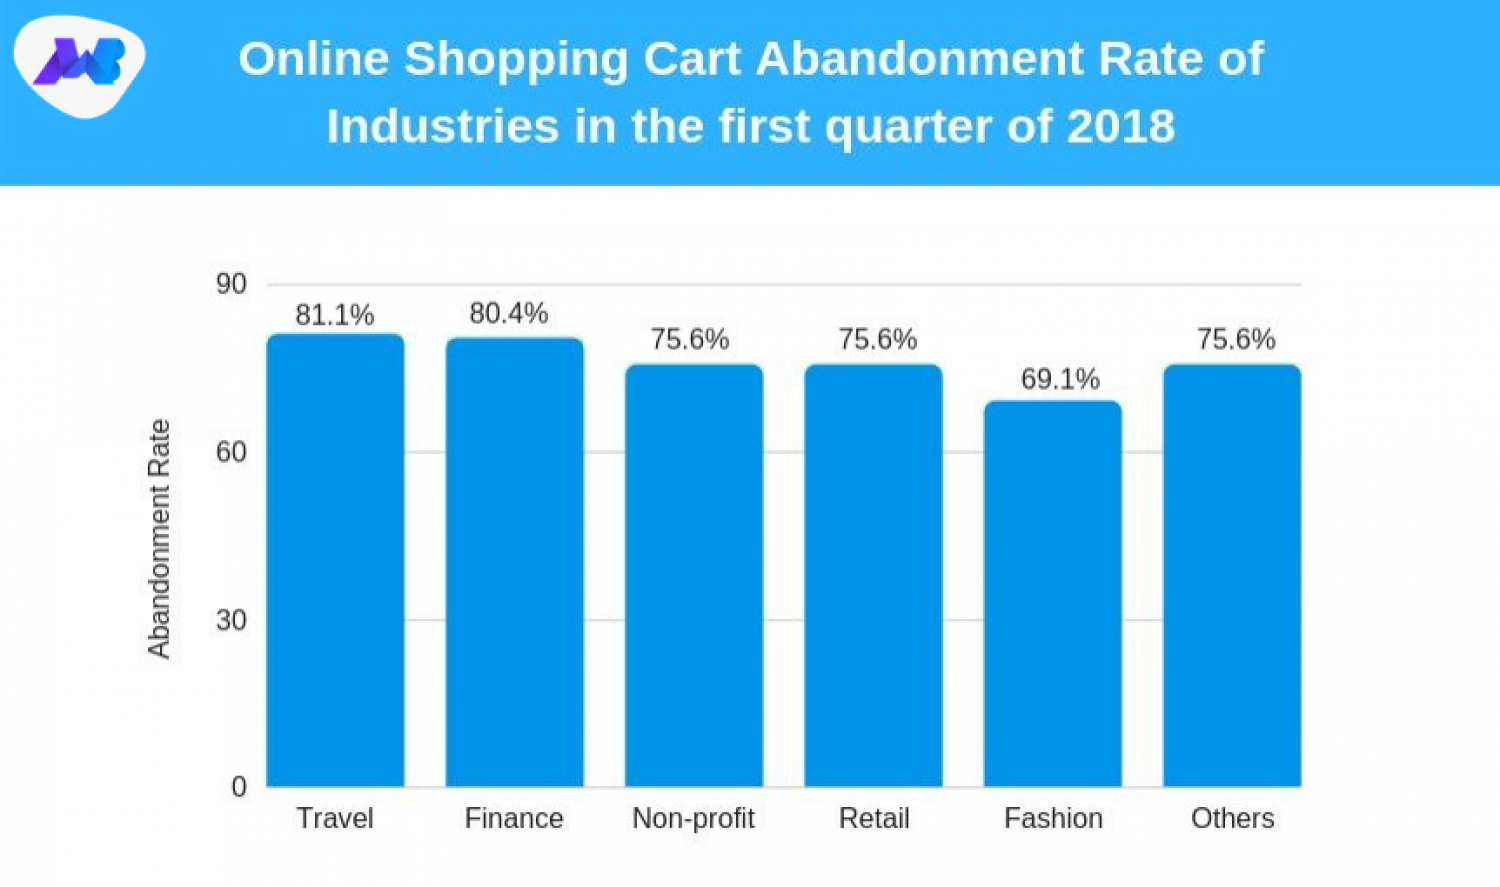 Online Shopping Cart Abandonment Rate 2018 Infographic